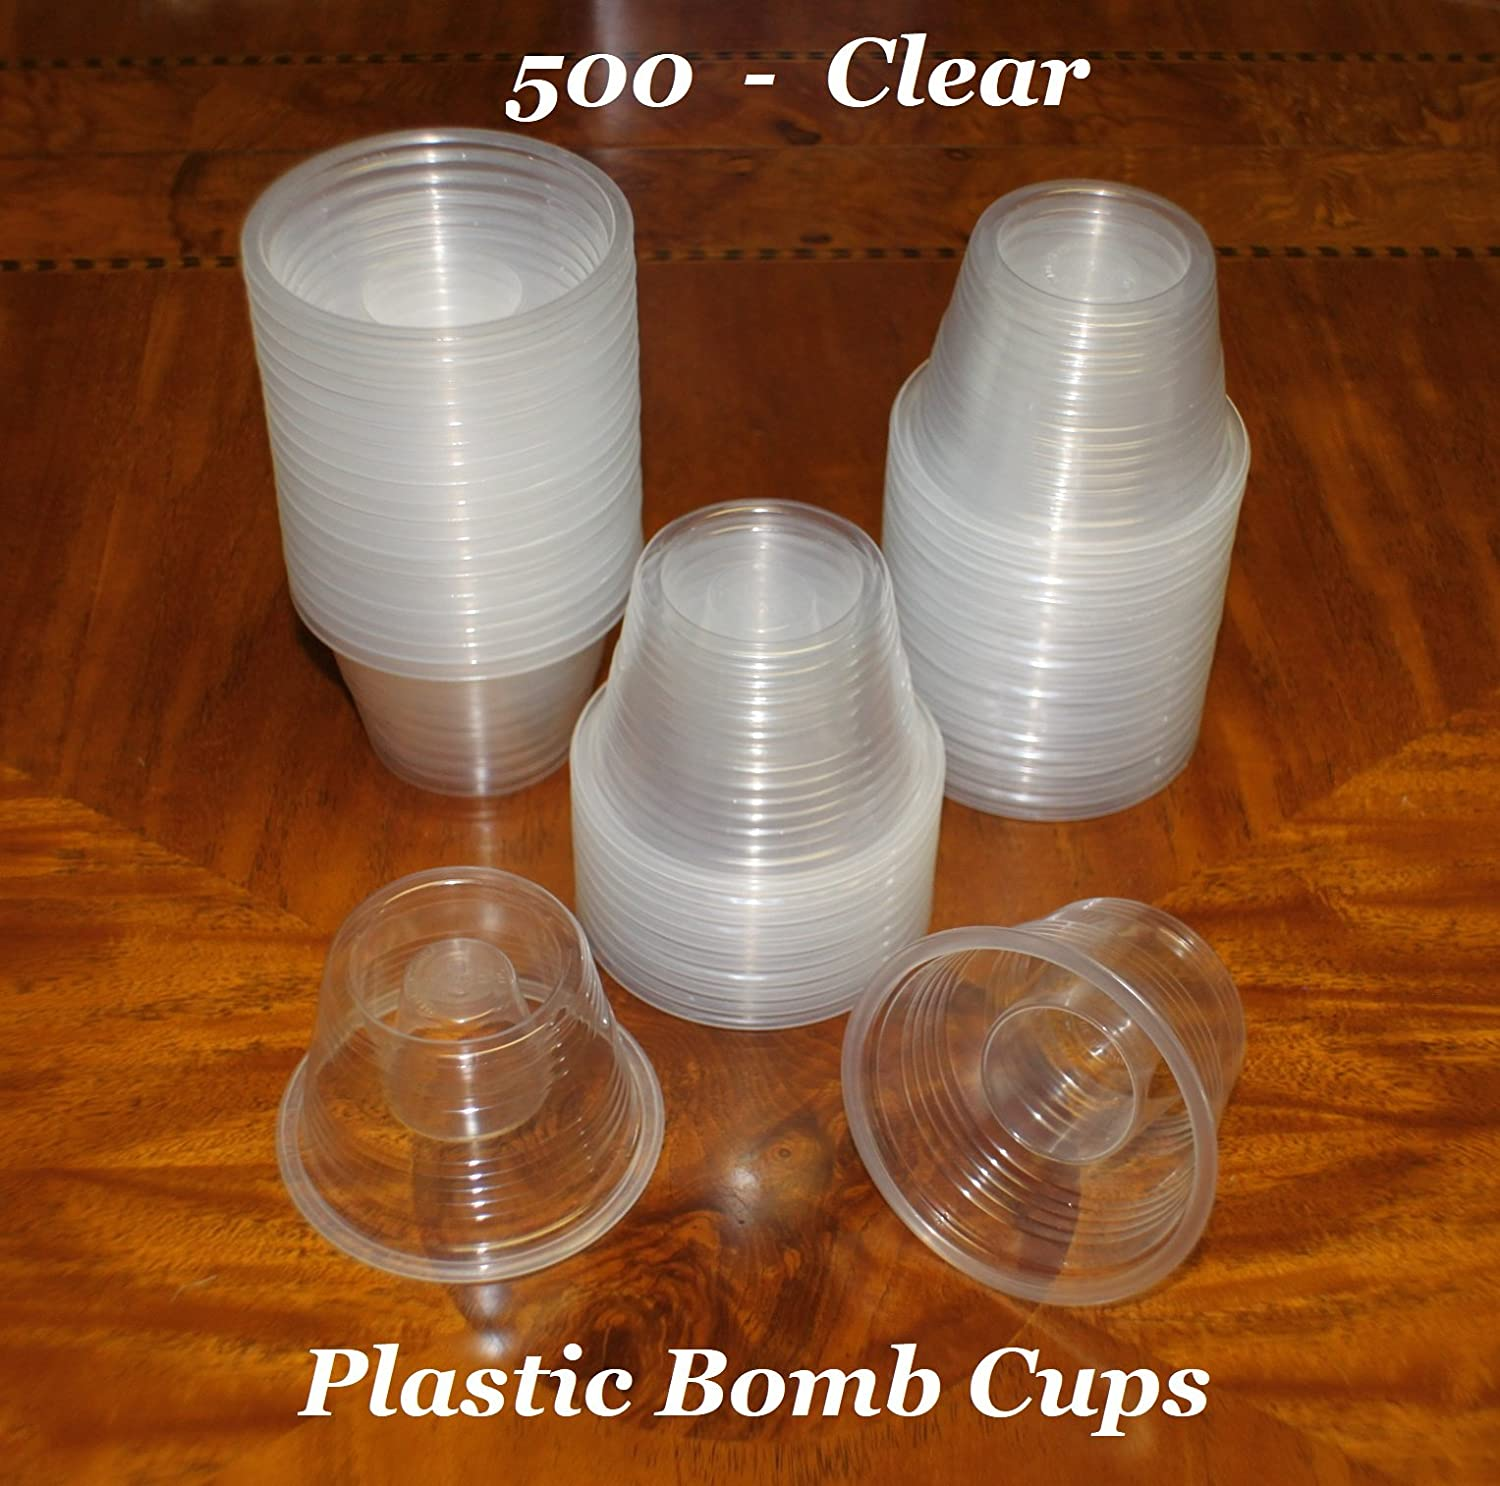 Clear Disposable Plastic Power Bomber Shot Cups or Bomb Glasses